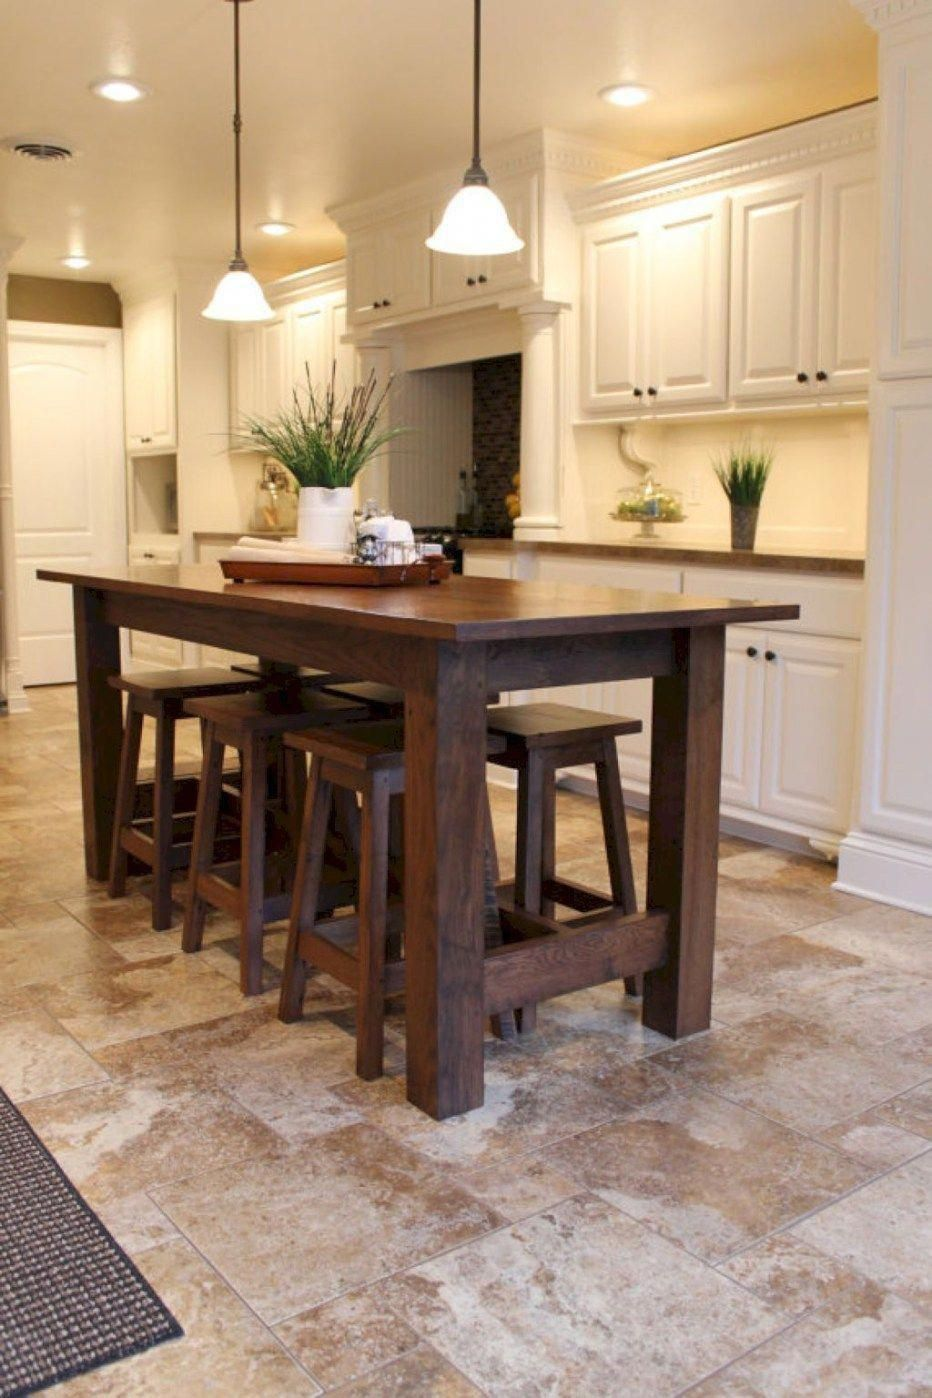 17 Great Kitchen Island Ideas Photos And Galleries Tags Simple